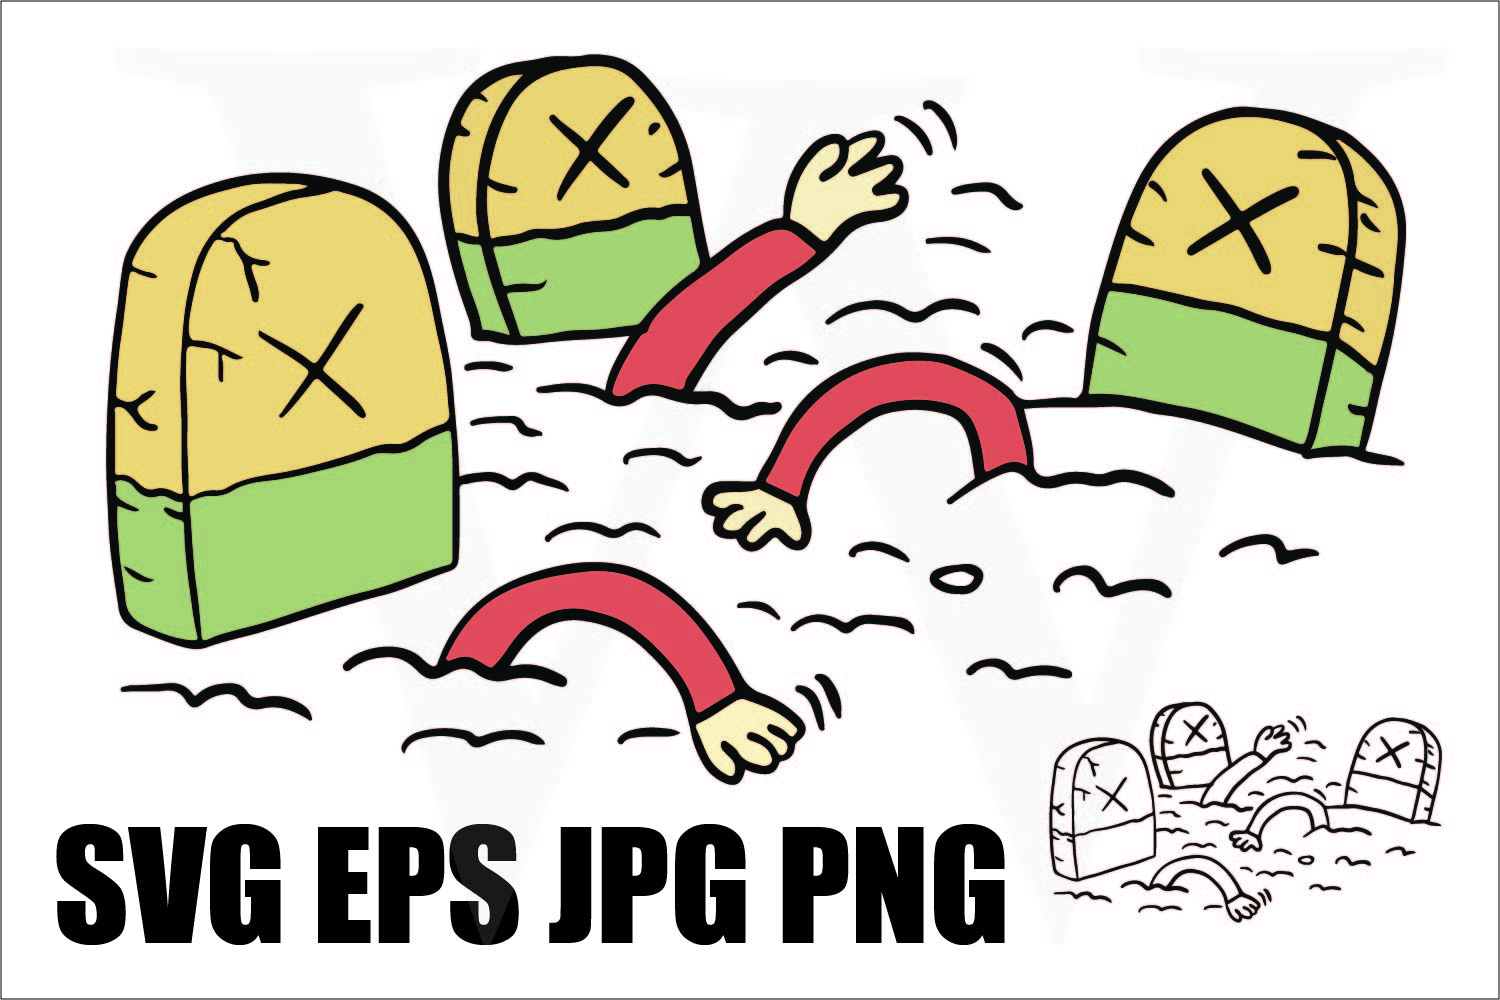 Zombies rising from tomb - SVG EPS JPG PNG example image 1